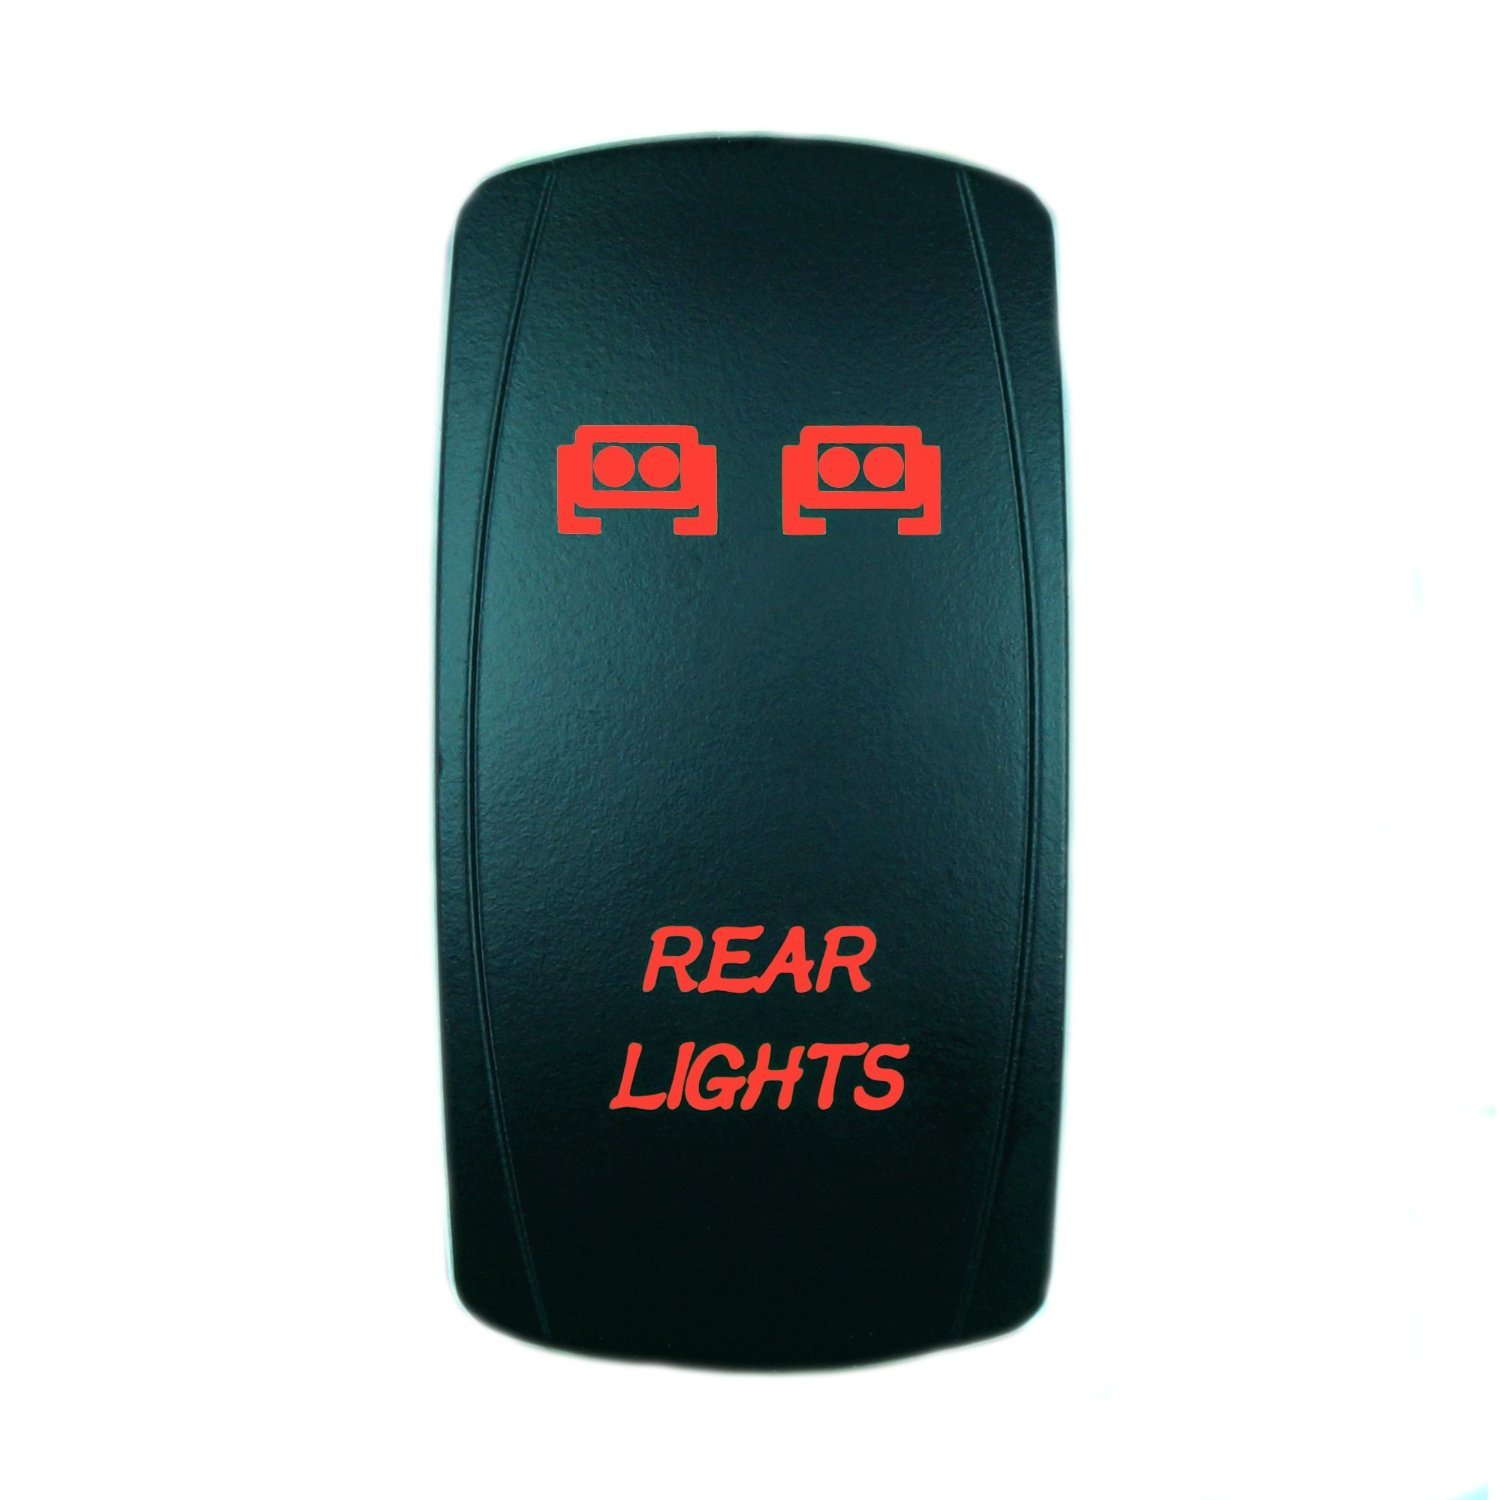 QUNQI STAR 5 pin Laser Backlit Rocker Switch REAR LIGHTS 20A 12V On/off LED Light Toggle Switch (Red)